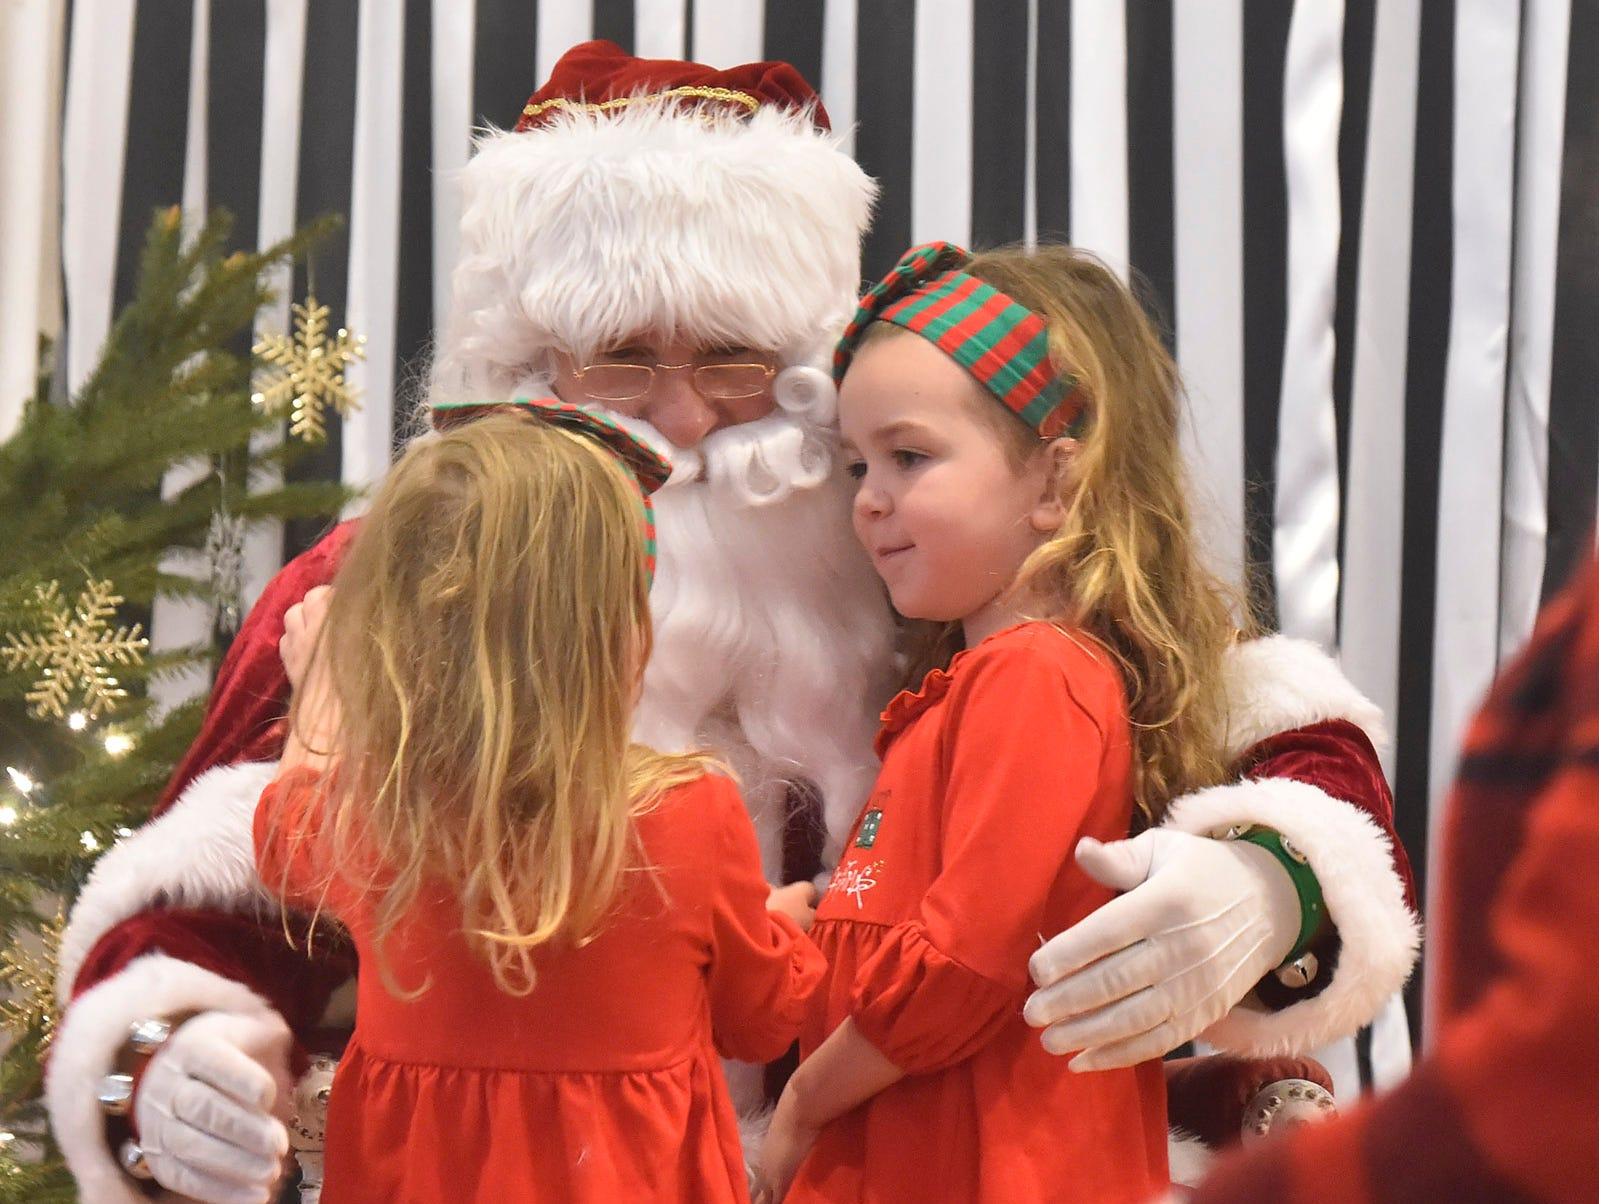 Santa listens to the wish lists of Breya and Mirabella Coyne of Sturgeon Bay during Christmas in the Village in Ephraim on Saturday, Dec. 1, 2018. Tina M. Gohr/USA TODAY NETWORK-Wisconsin